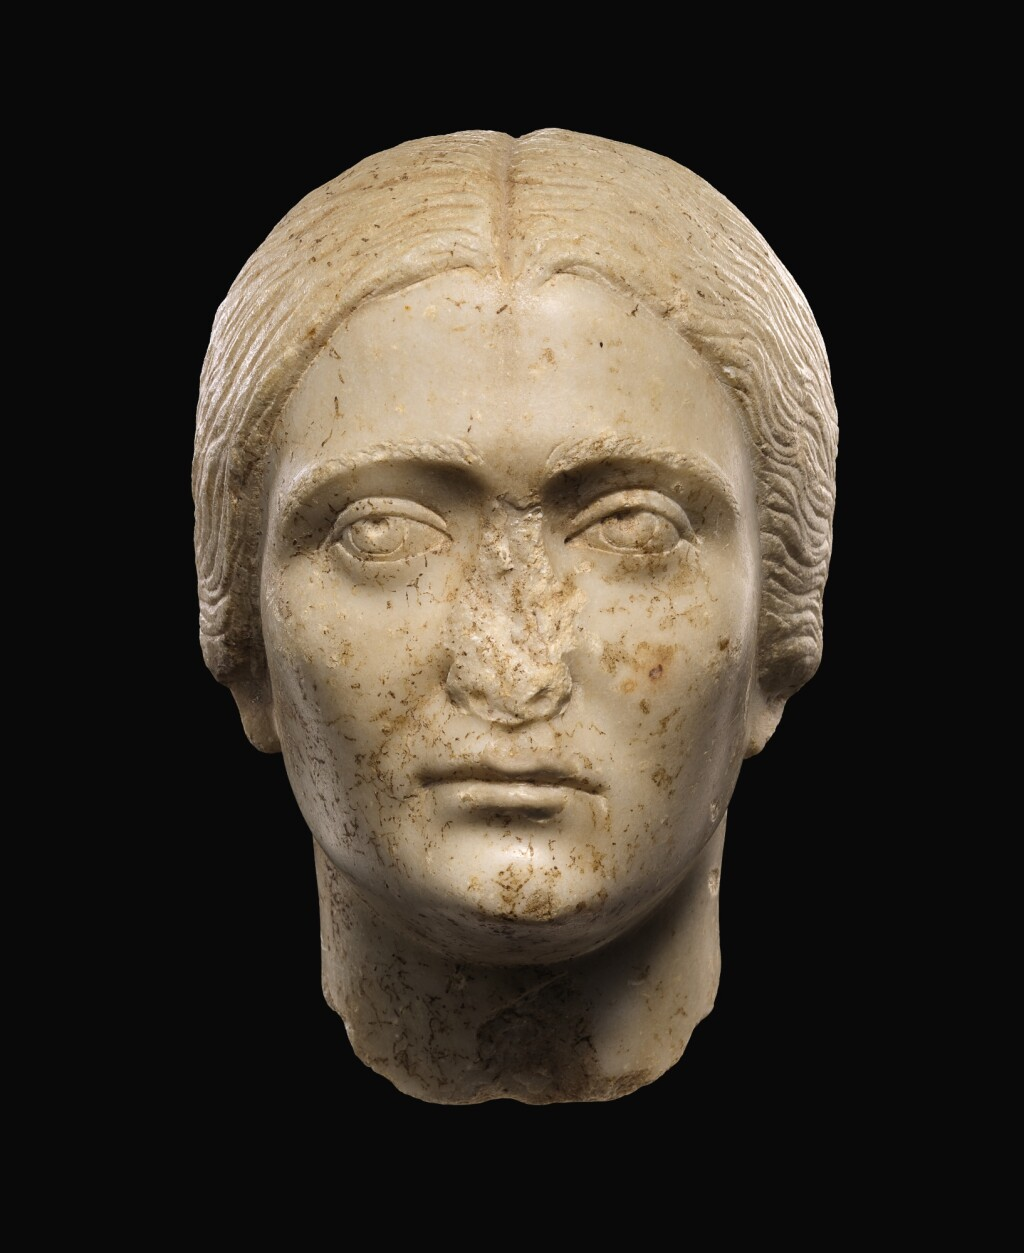 A ROMAN MARBLE PORTRAIT HEAD OF A WOMAN, ANTONINE, 3RD QUARTER OF THE 2ND CENTURY A.D.